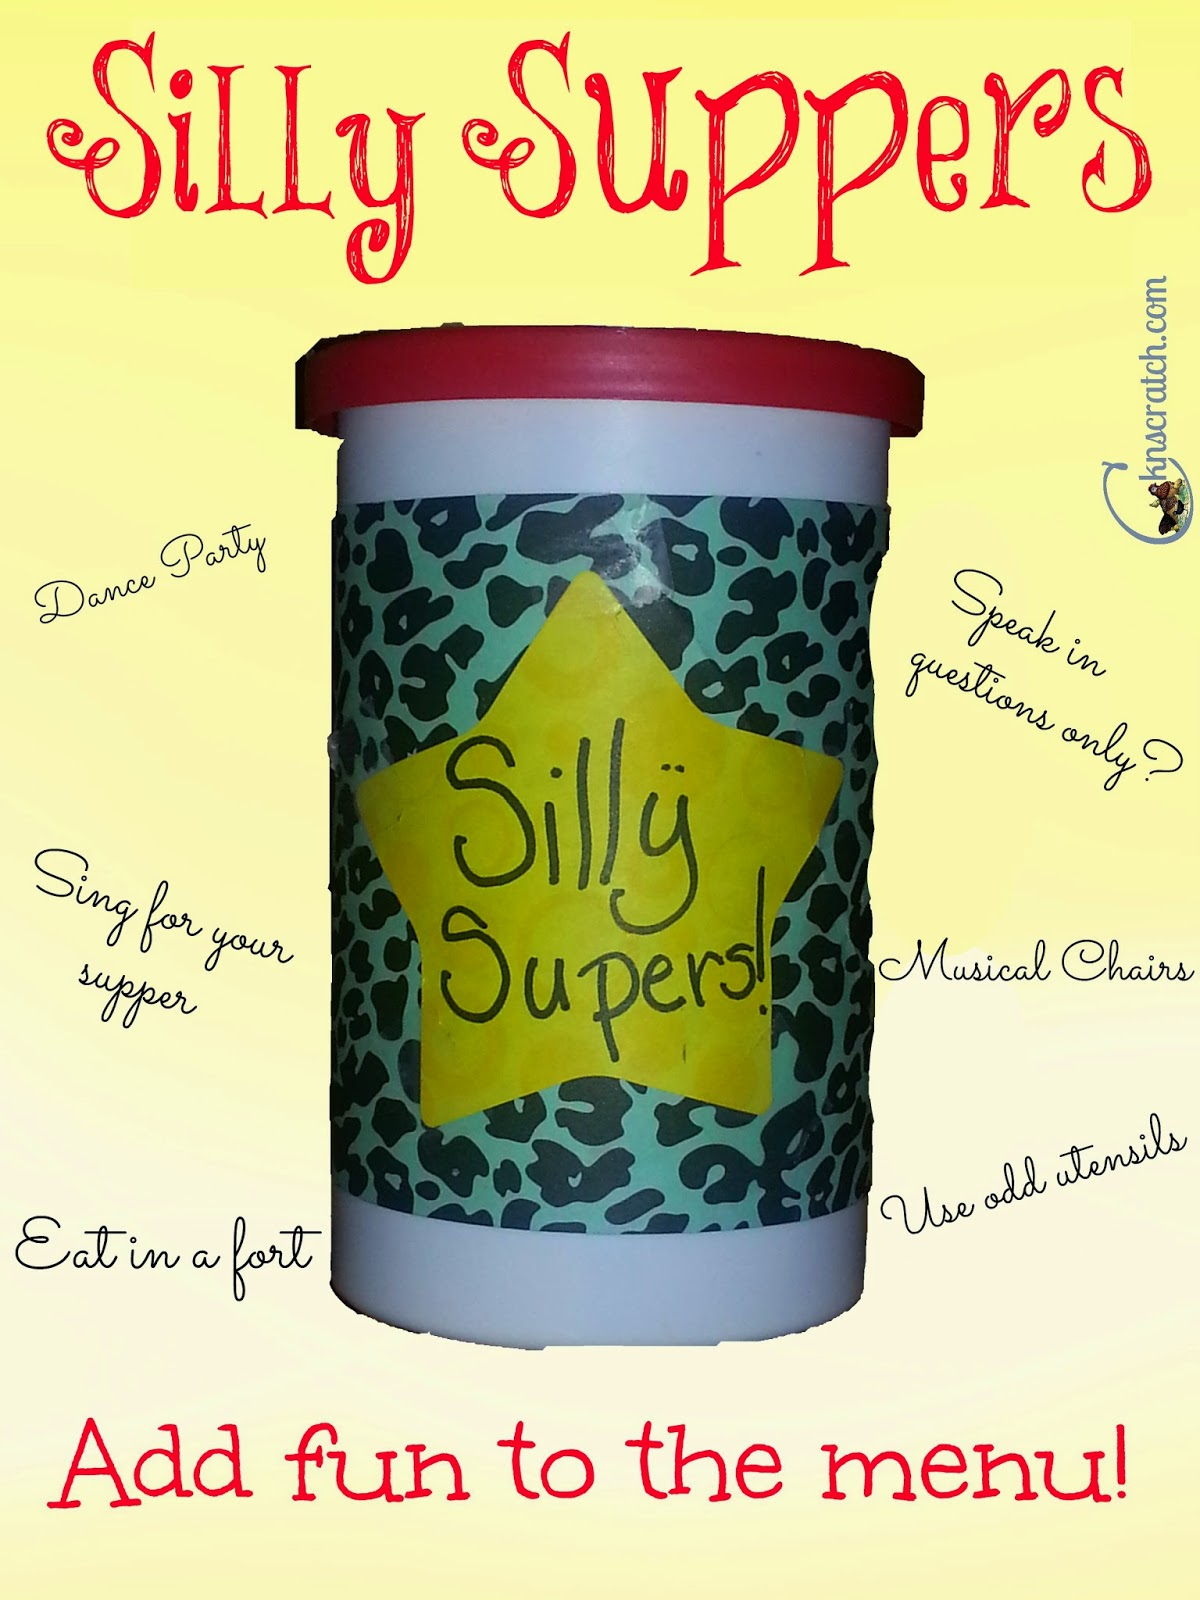 How to be a fun mom - have silly suppers.  Guest post by Camille Gillham @ ATIPicalDay #sillysuppers #kidactivities #bathroomfun